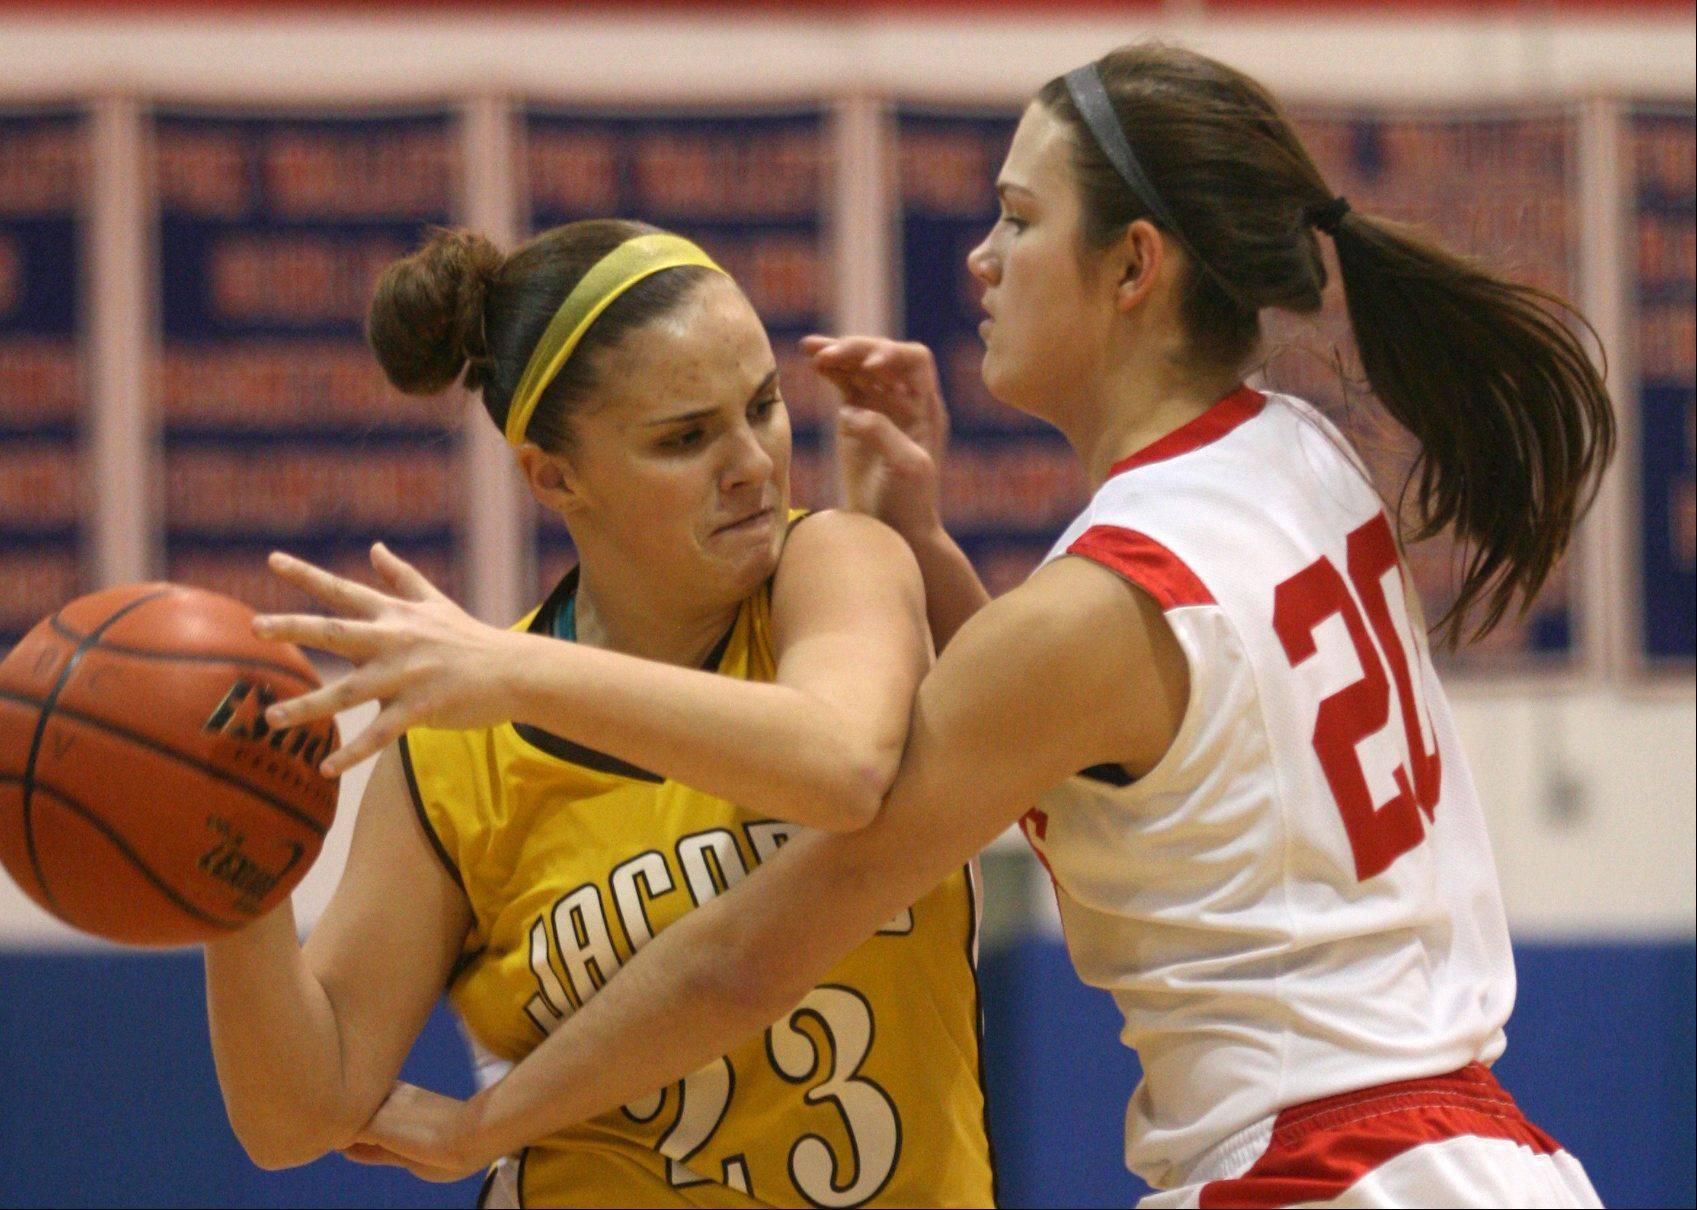 Jacobs' Tiffany Frighetto, left, tries to get past Dundee-Crown's Franchesca Cavallaro.